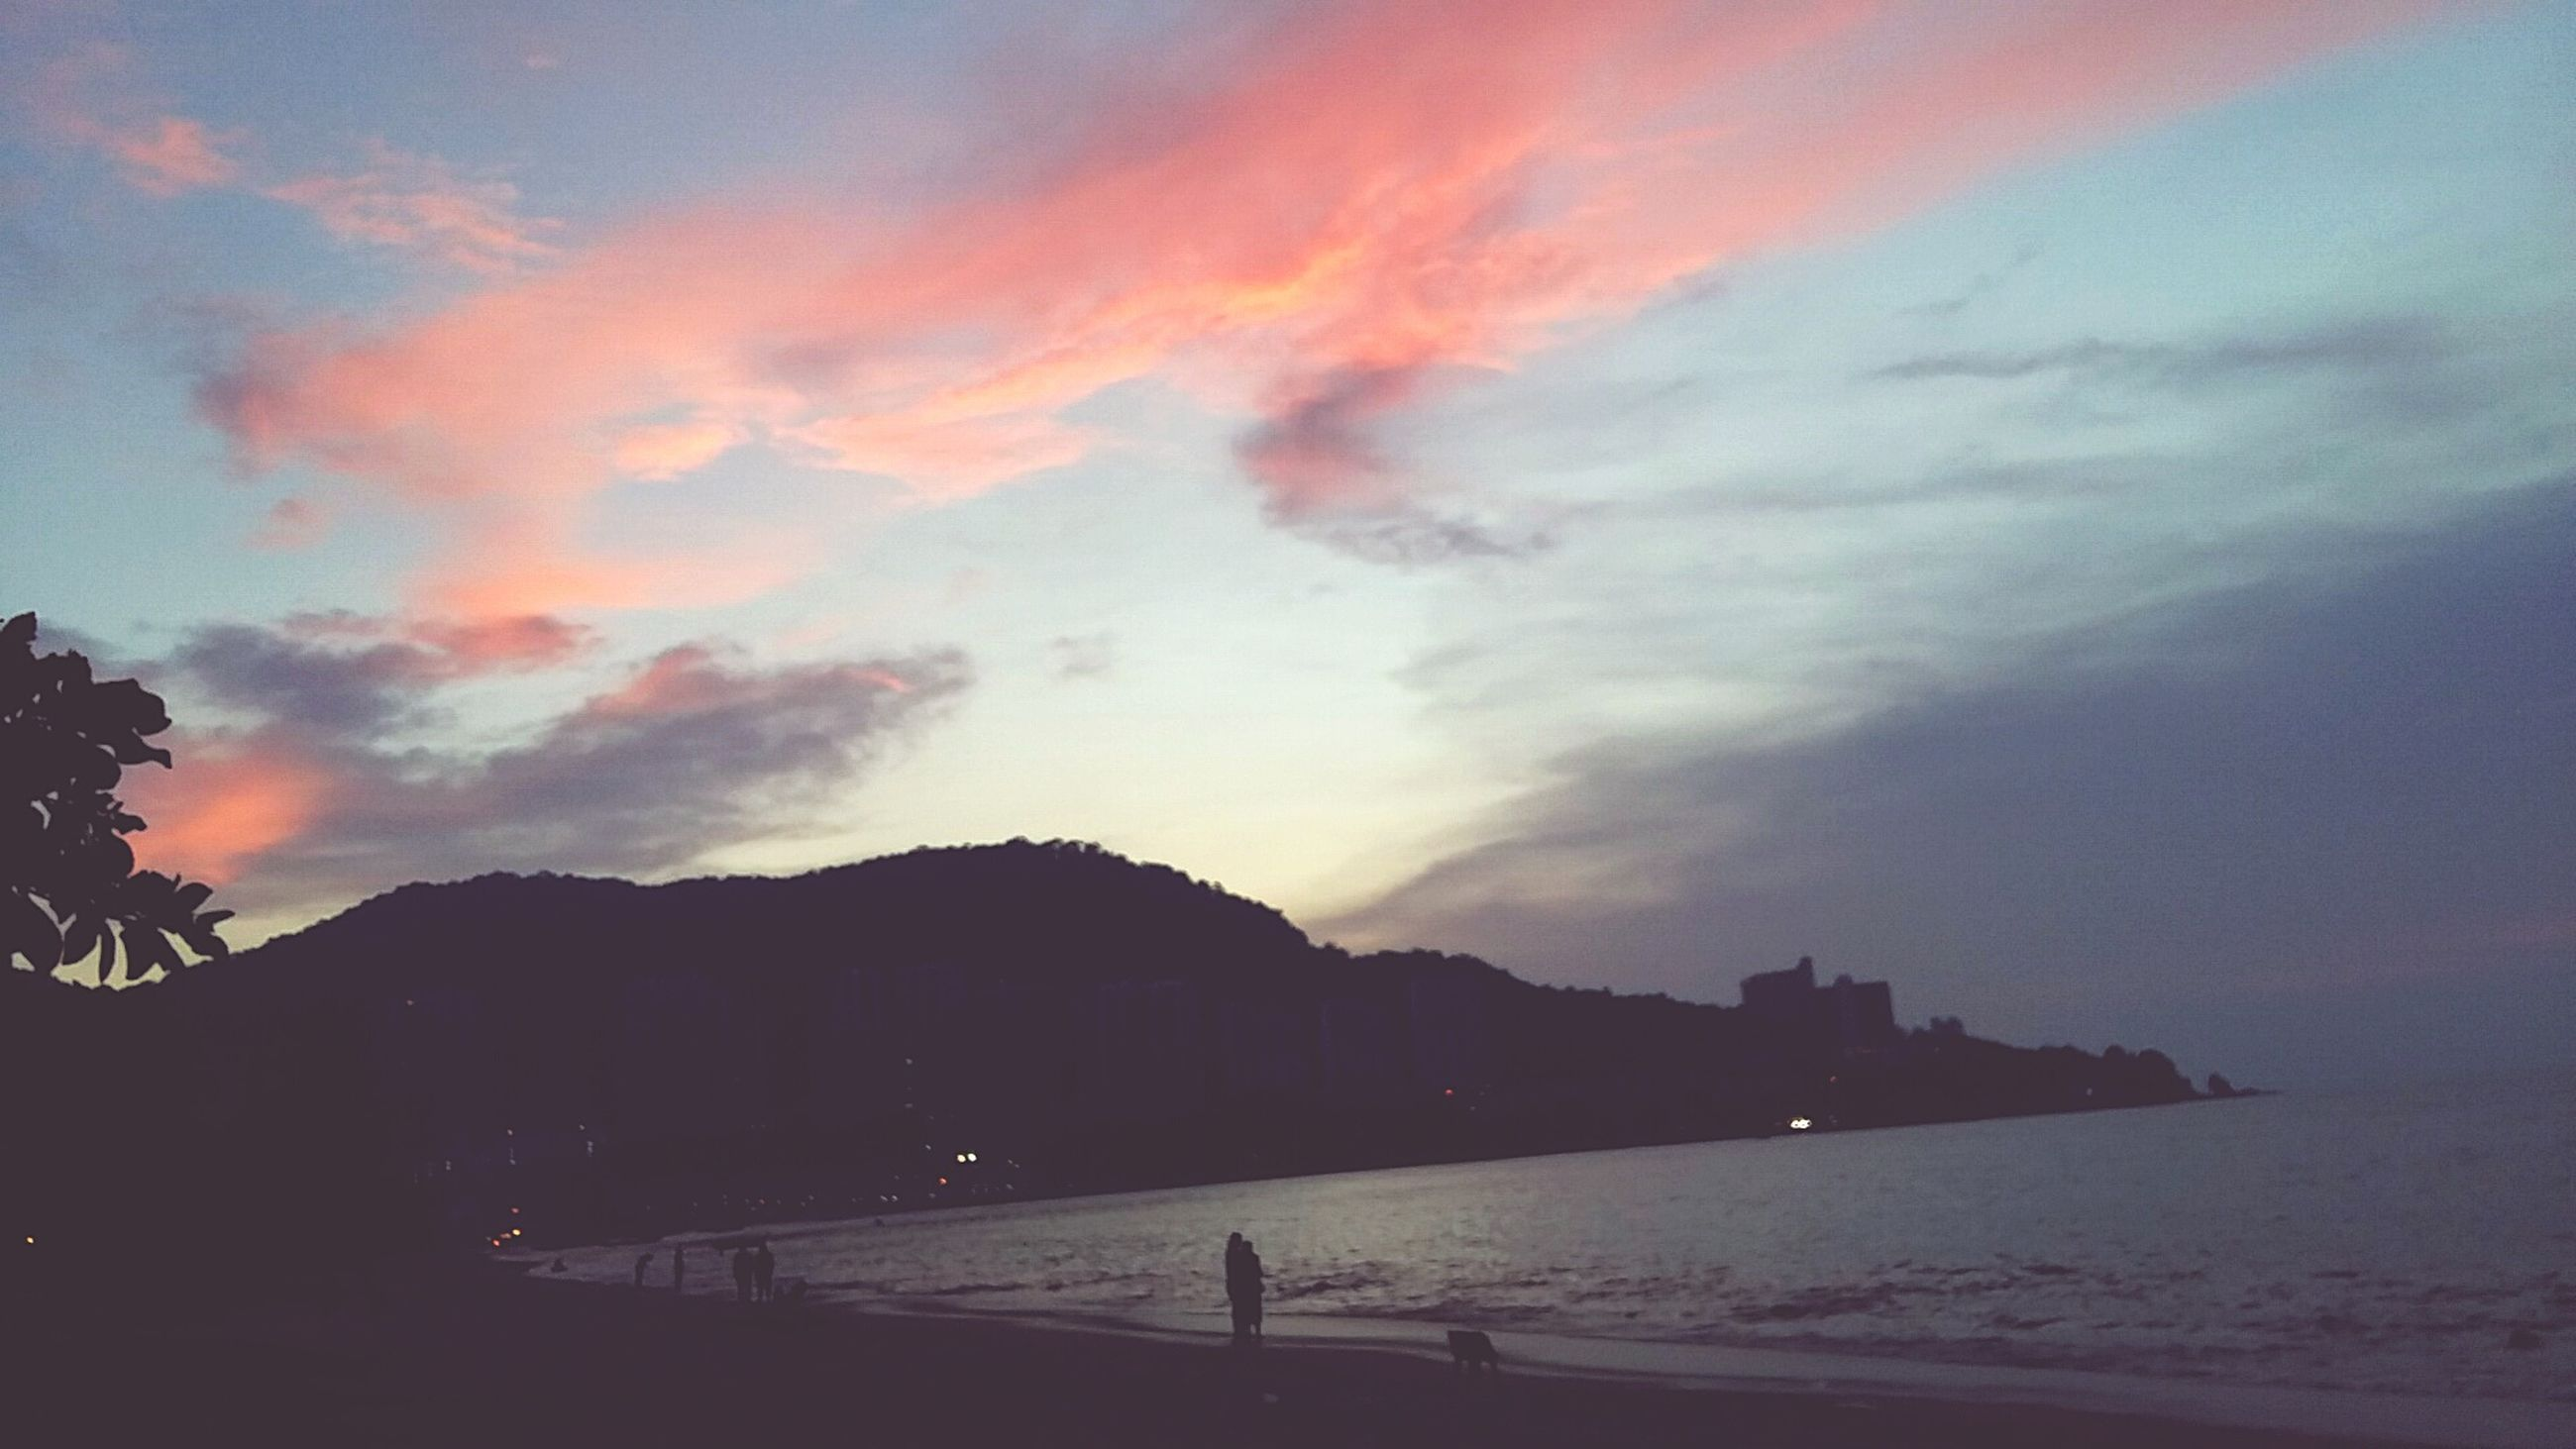 sunset, sky, scenics, silhouette, beauty in nature, tranquil scene, water, tranquility, cloud - sky, mountain, sea, nature, orange color, idyllic, beach, dusk, cloud, built structure, dramatic sky, cloudy